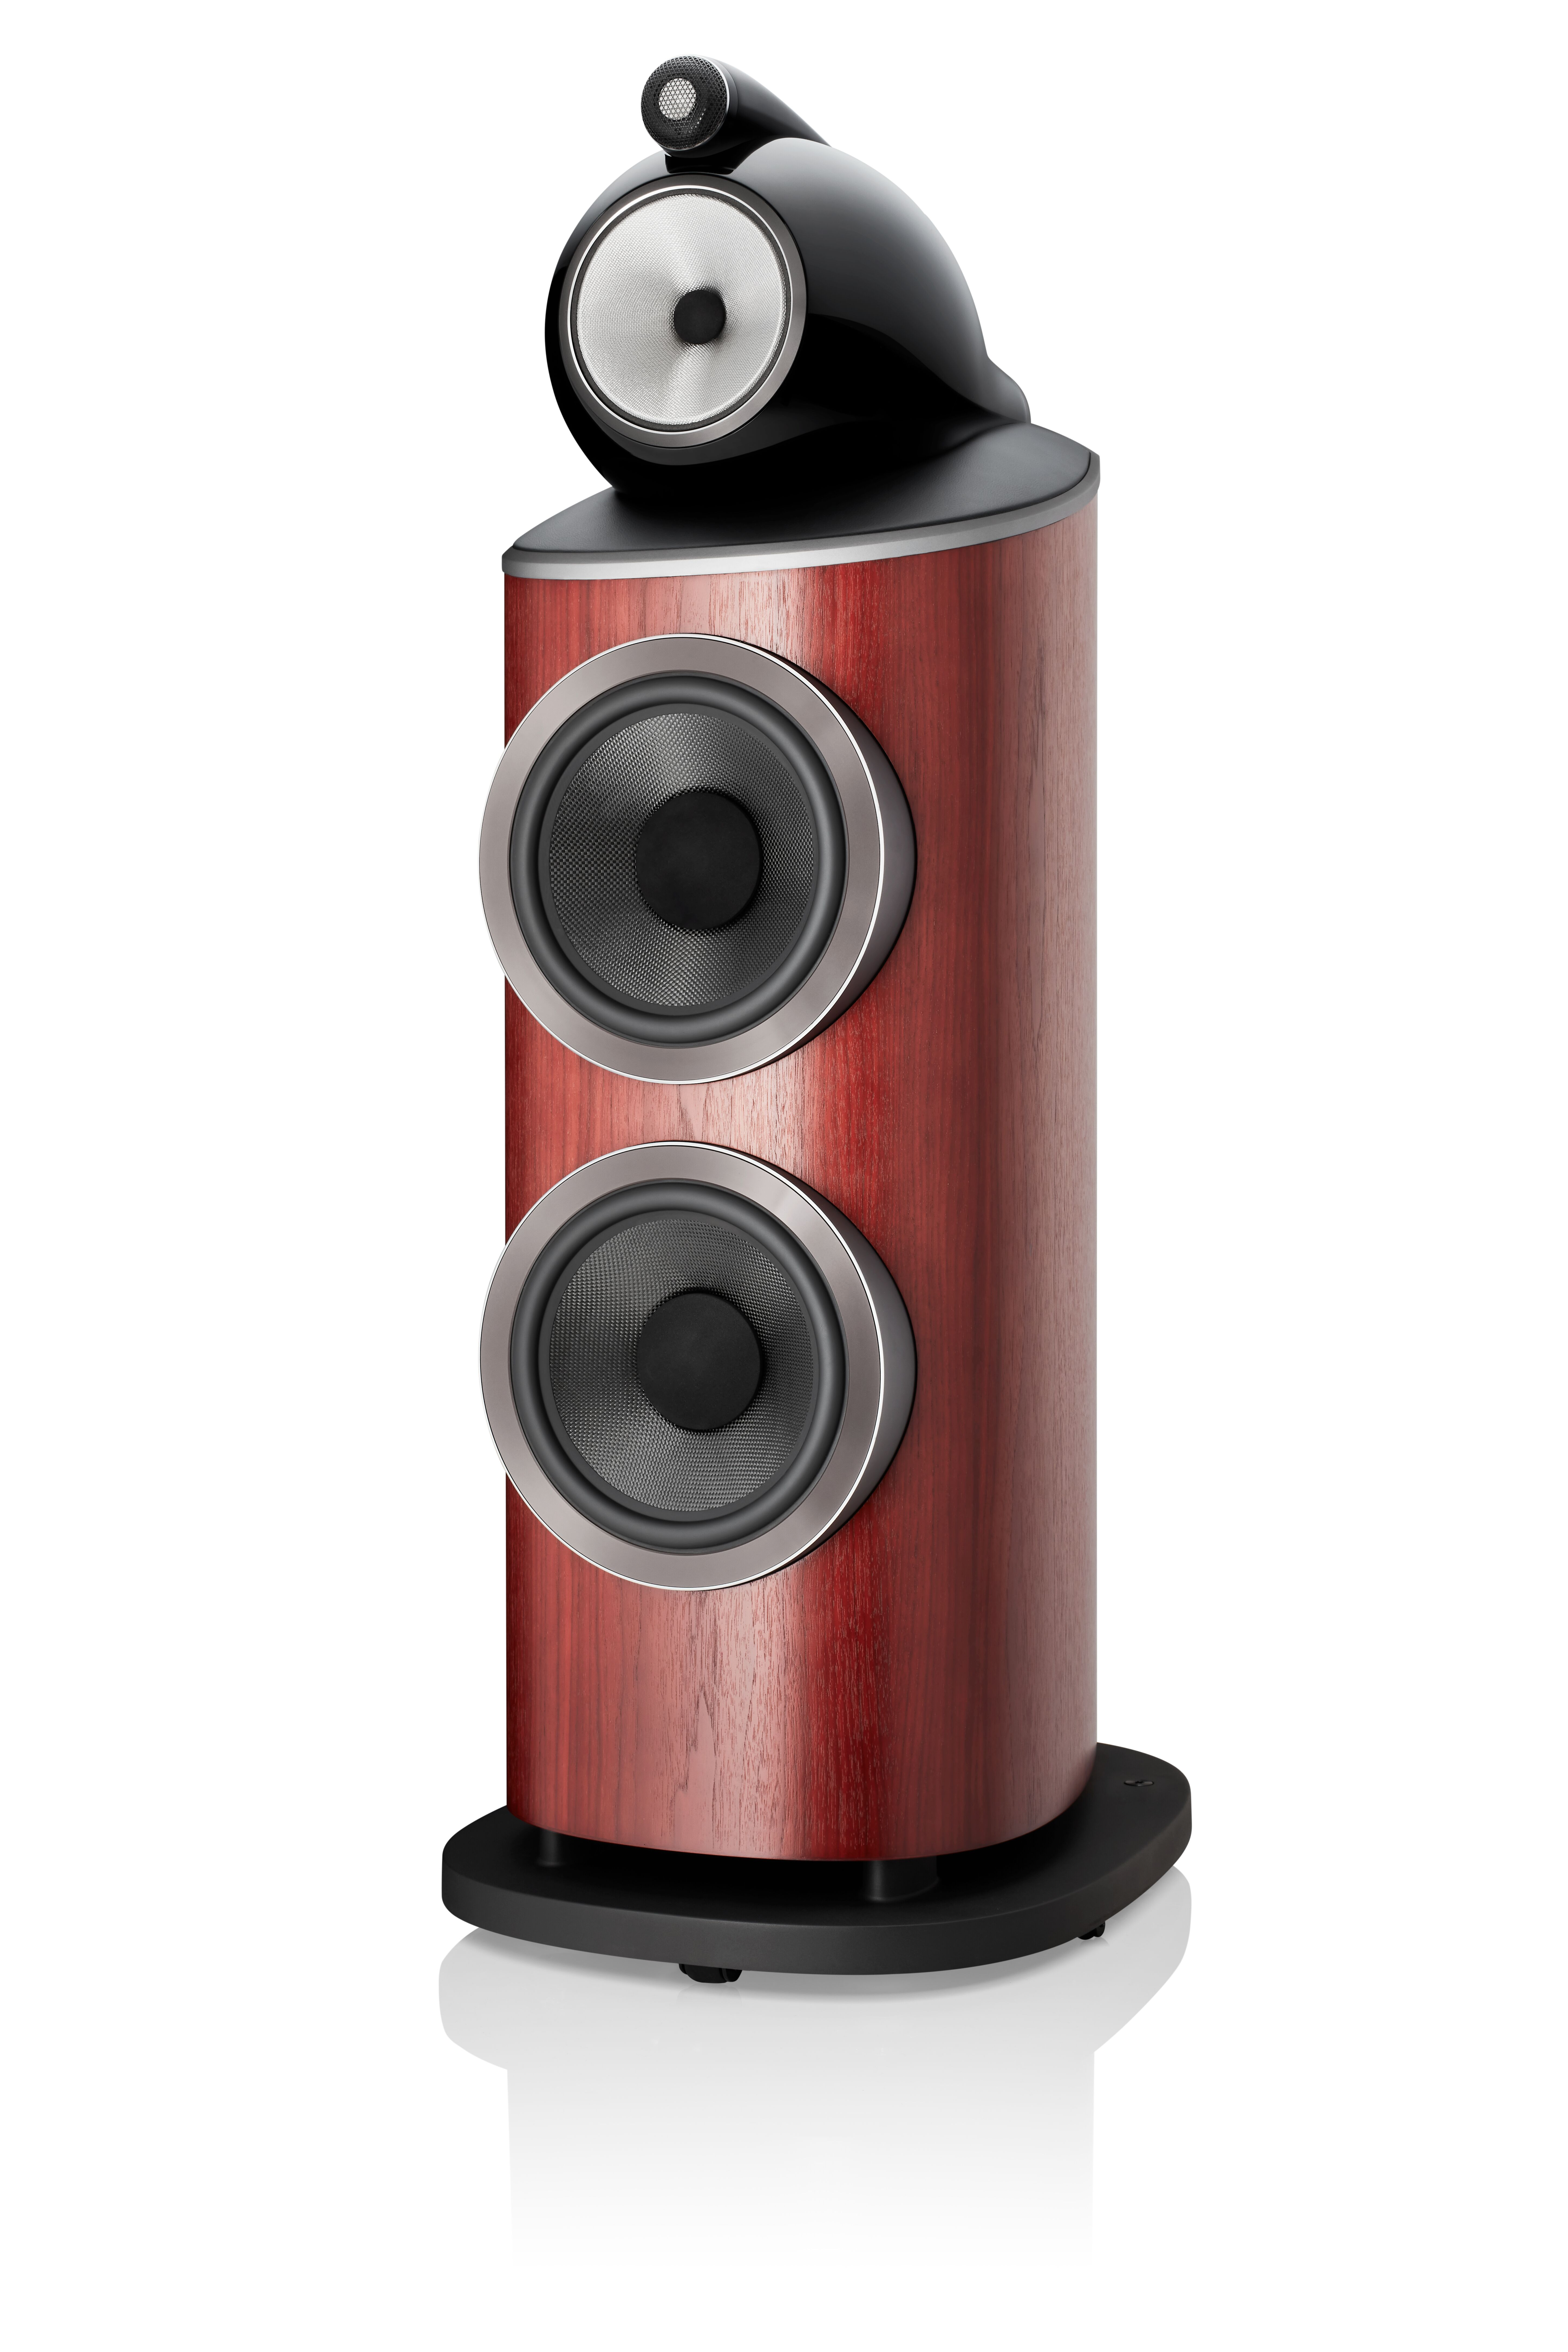 Bowers & Wilkins Introduces Upgraded 800-Series Diamond Line